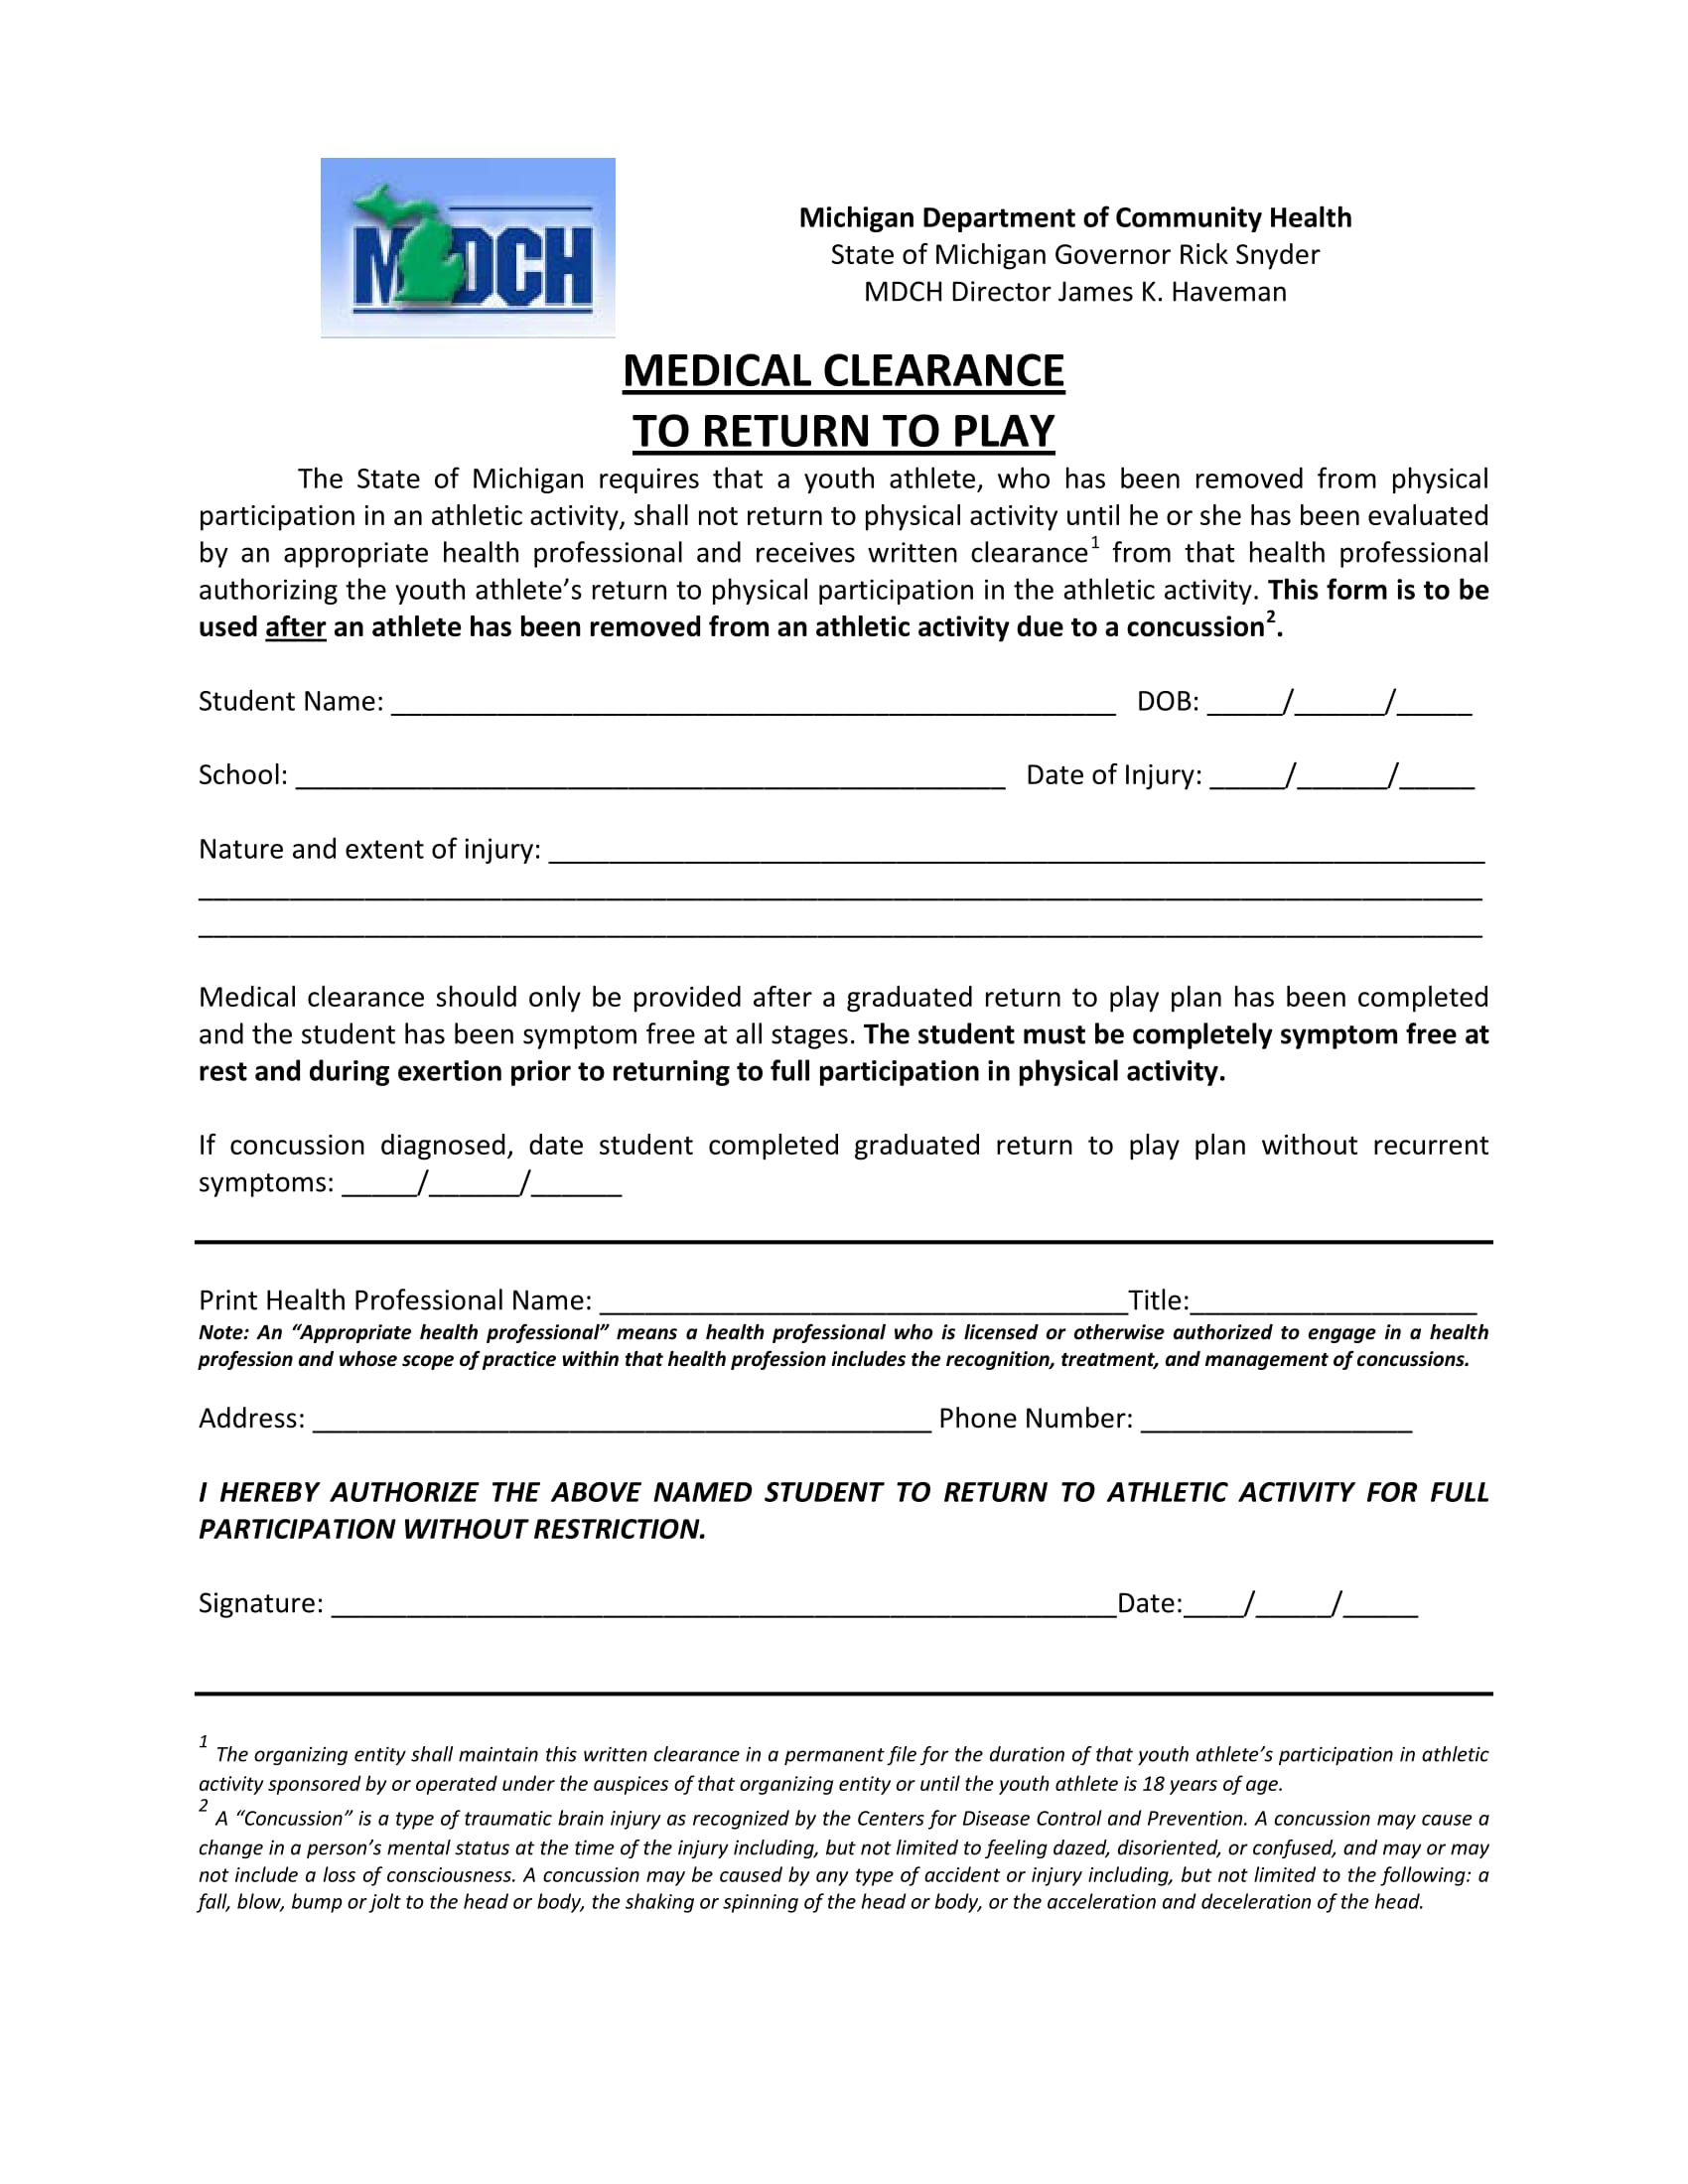 return to play medical clearance form 1